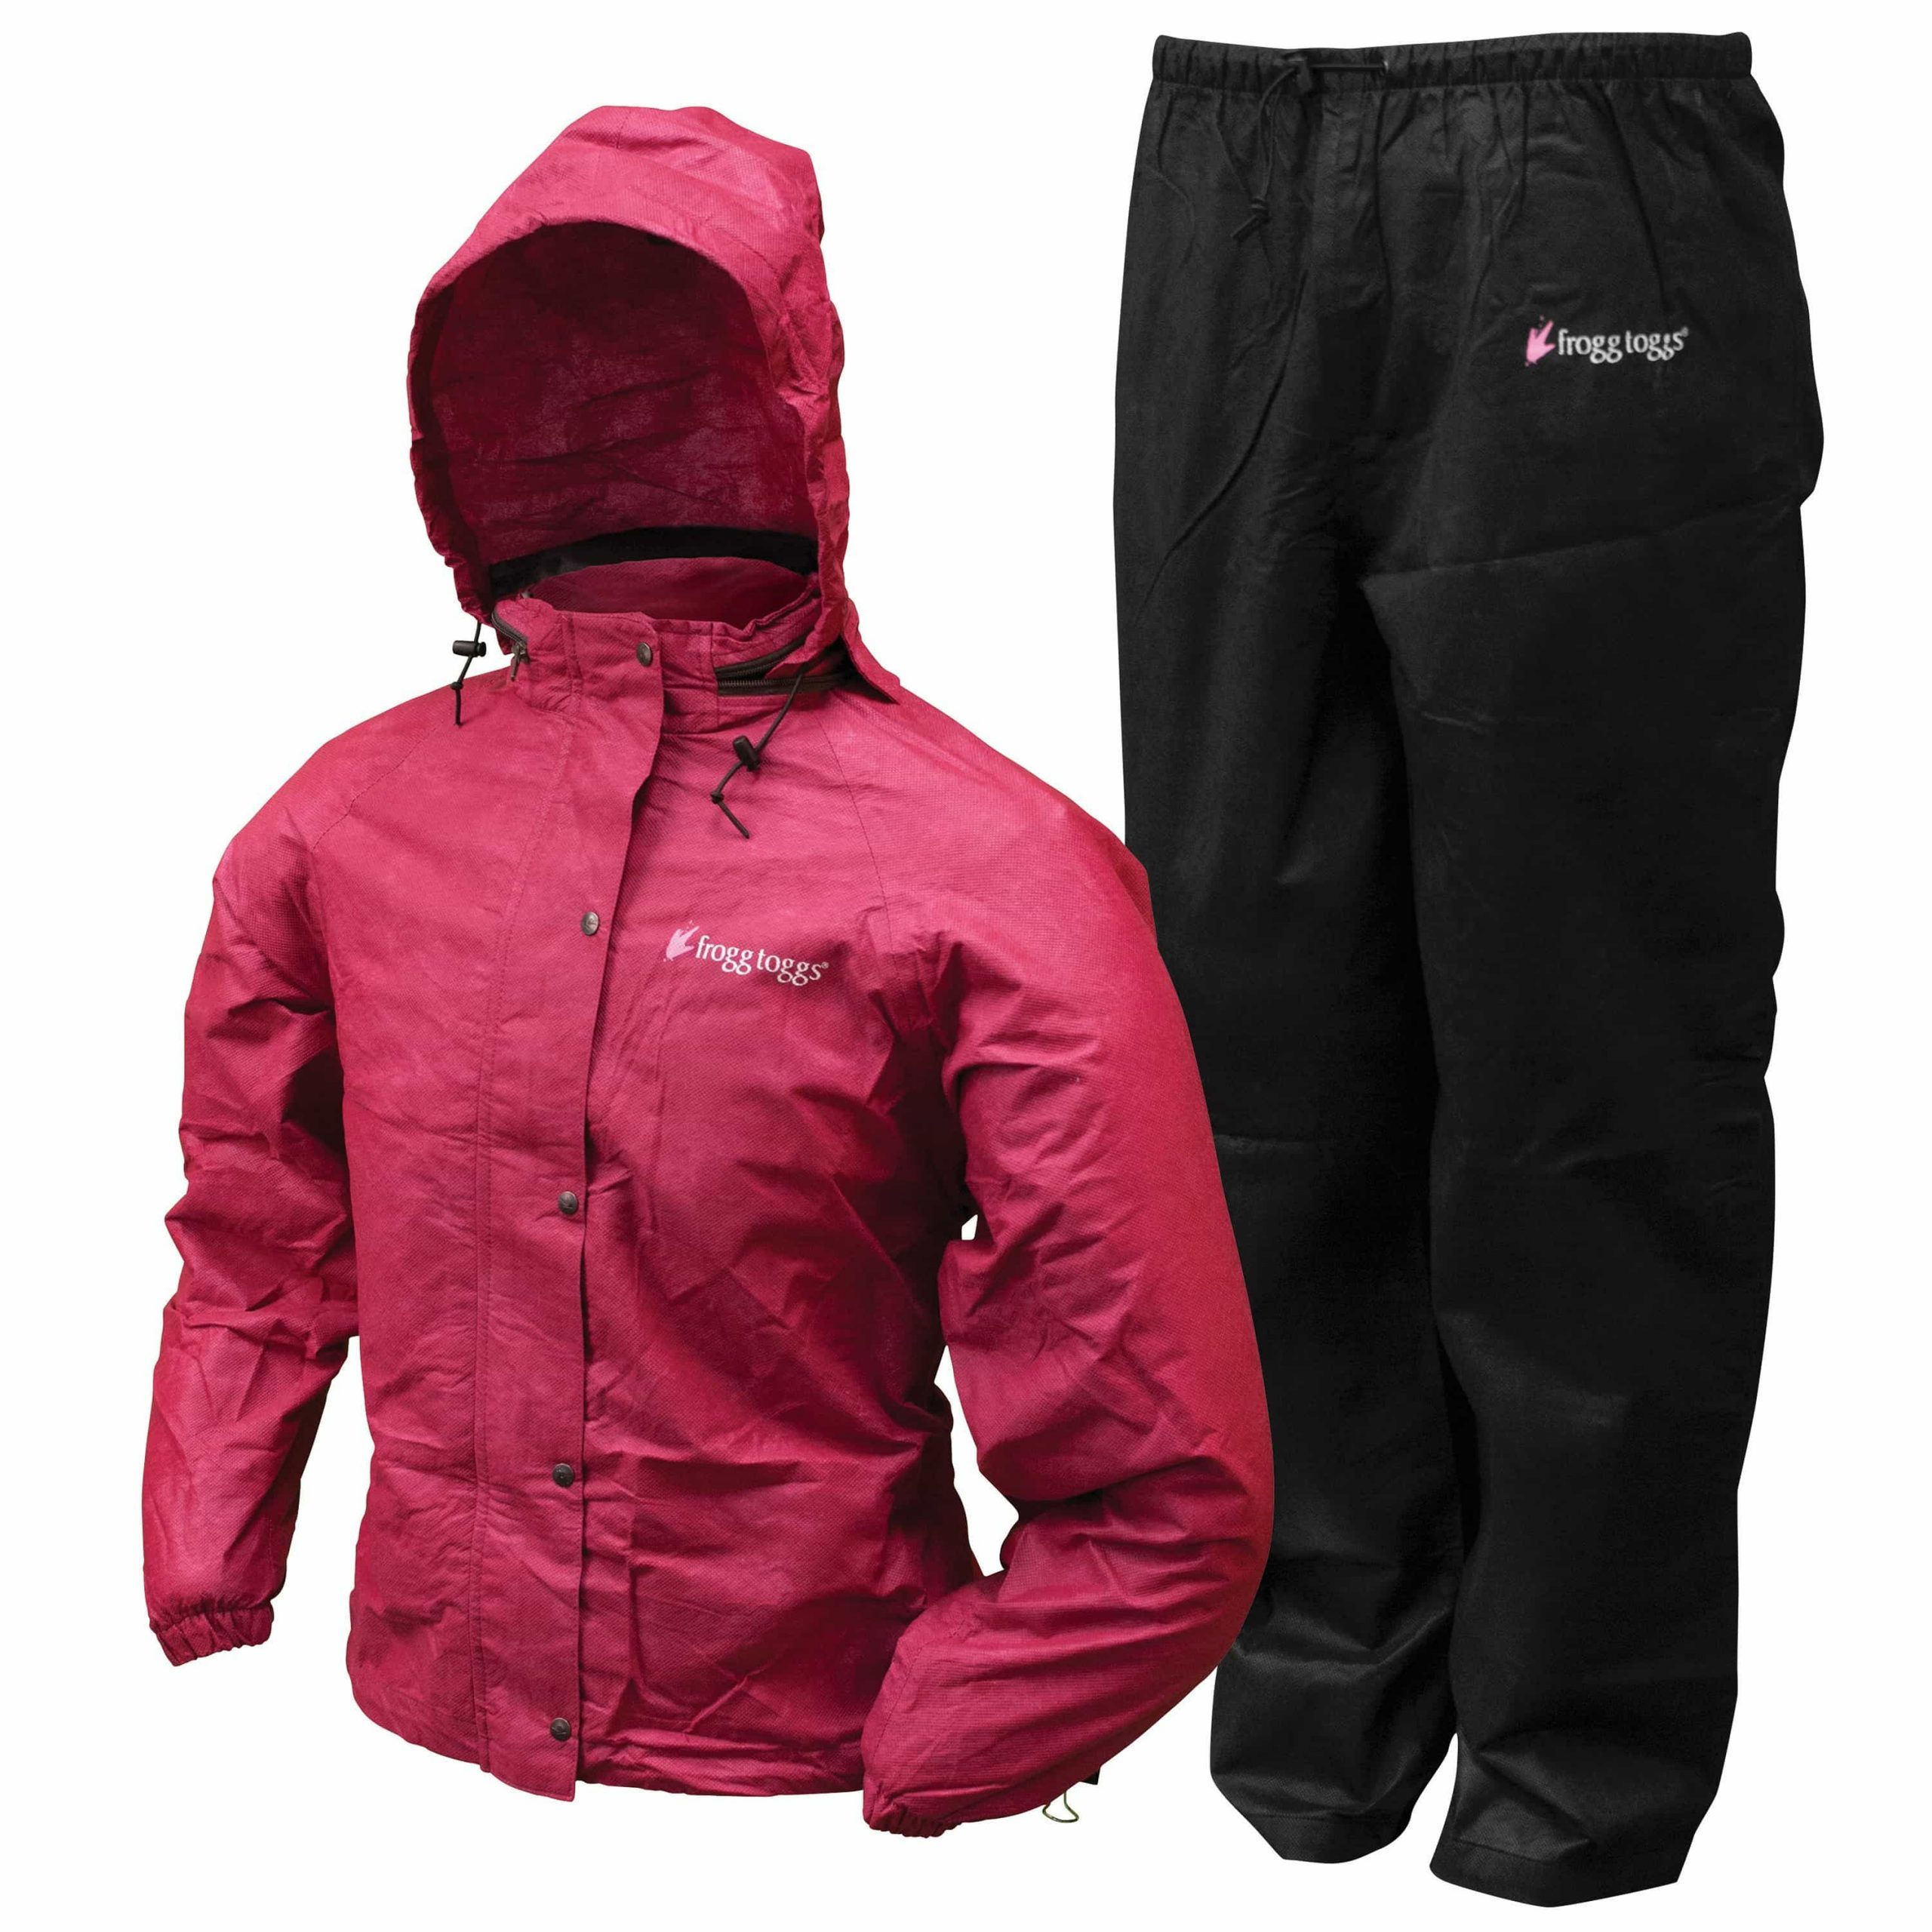 Frogg_Toggs_Womens_All_Purpose_Rain_Suit